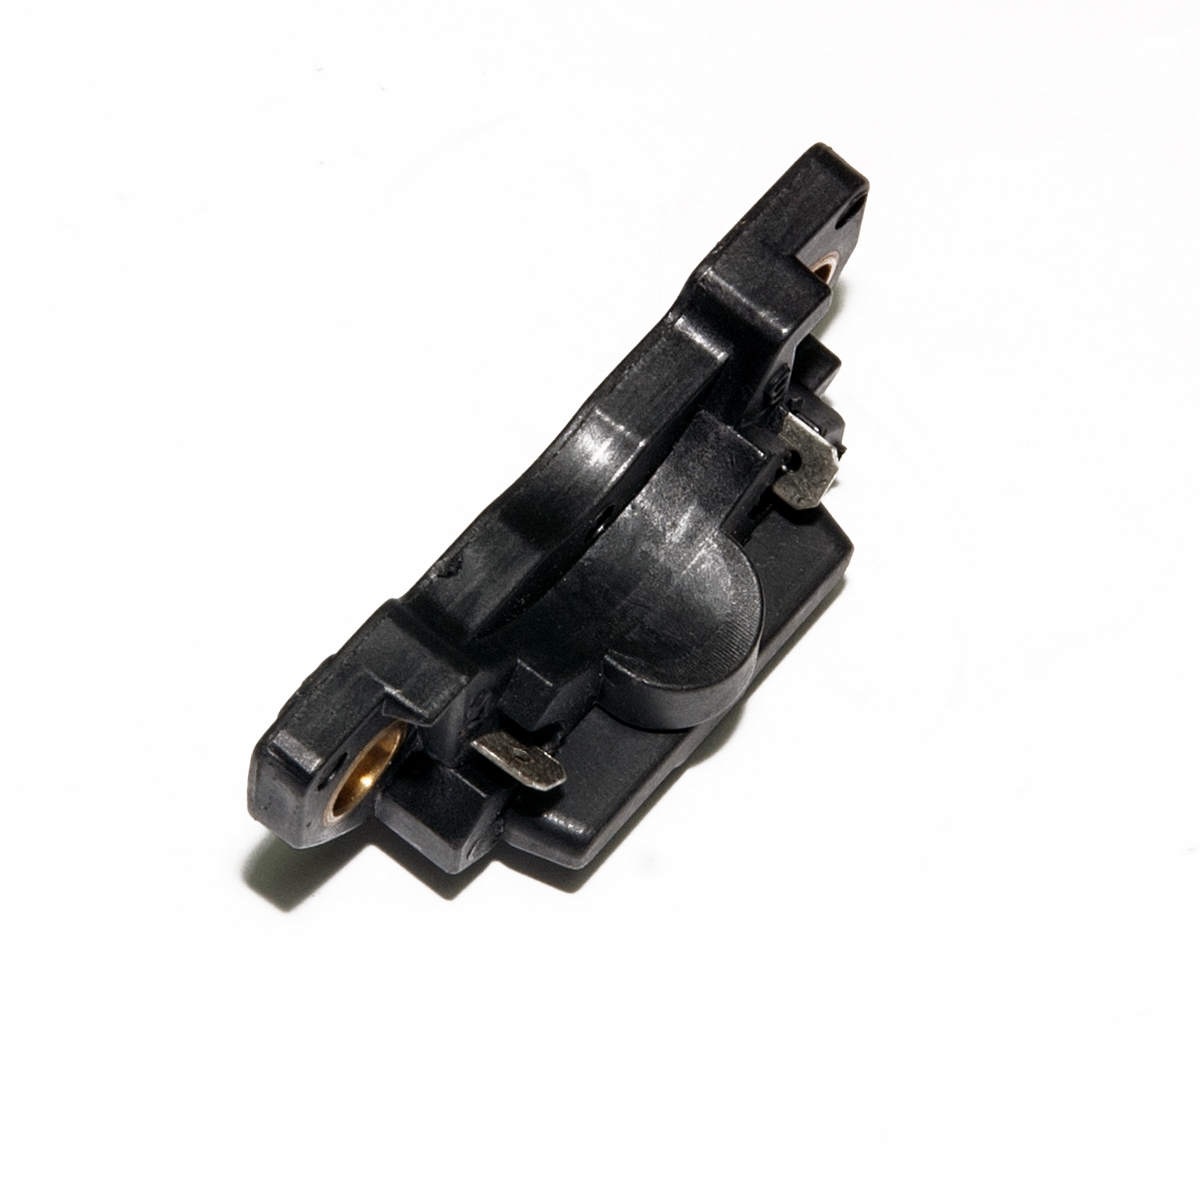 OEM Quality Ignition Control Module for Various Vehicles LX-549 LX549 J152